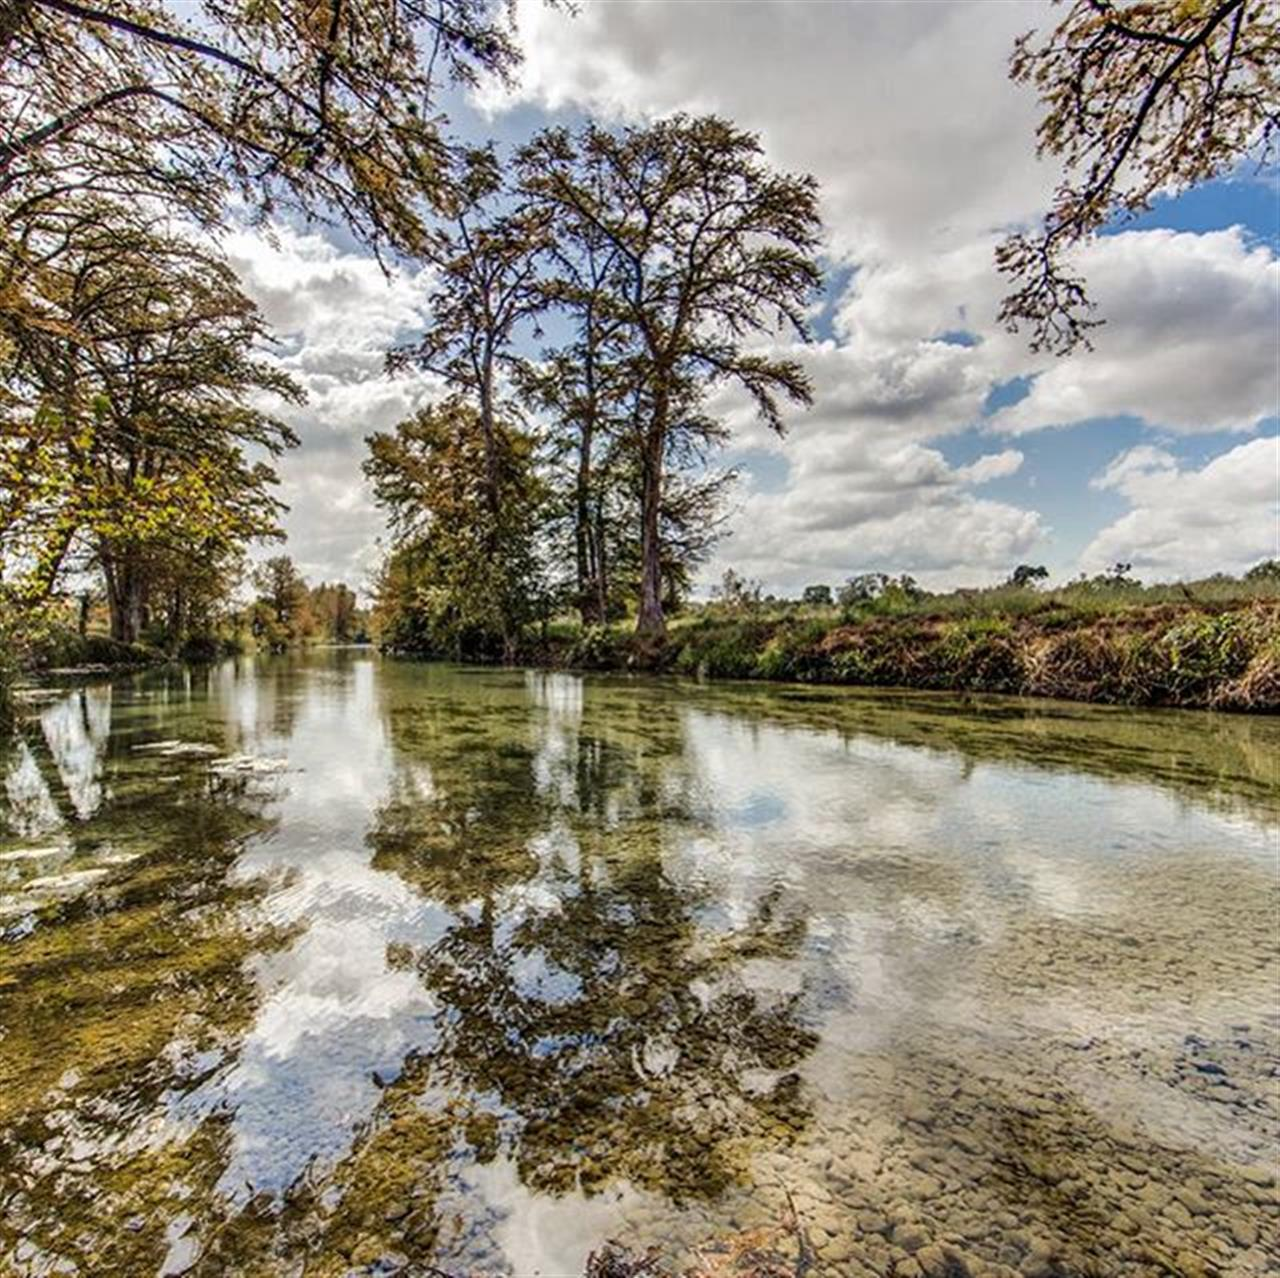 #RANCHROUNDUP 1829 Peaceful Valley Road listed by Charles A. Beever III. This beautiful acreage includes approx. 1,200 ft. of cypress and pecan-lined Medina River frontage, 3,000 ft. of both sides of Hicks Creek and a secondary creek which runs frequently. #TheVeryBest